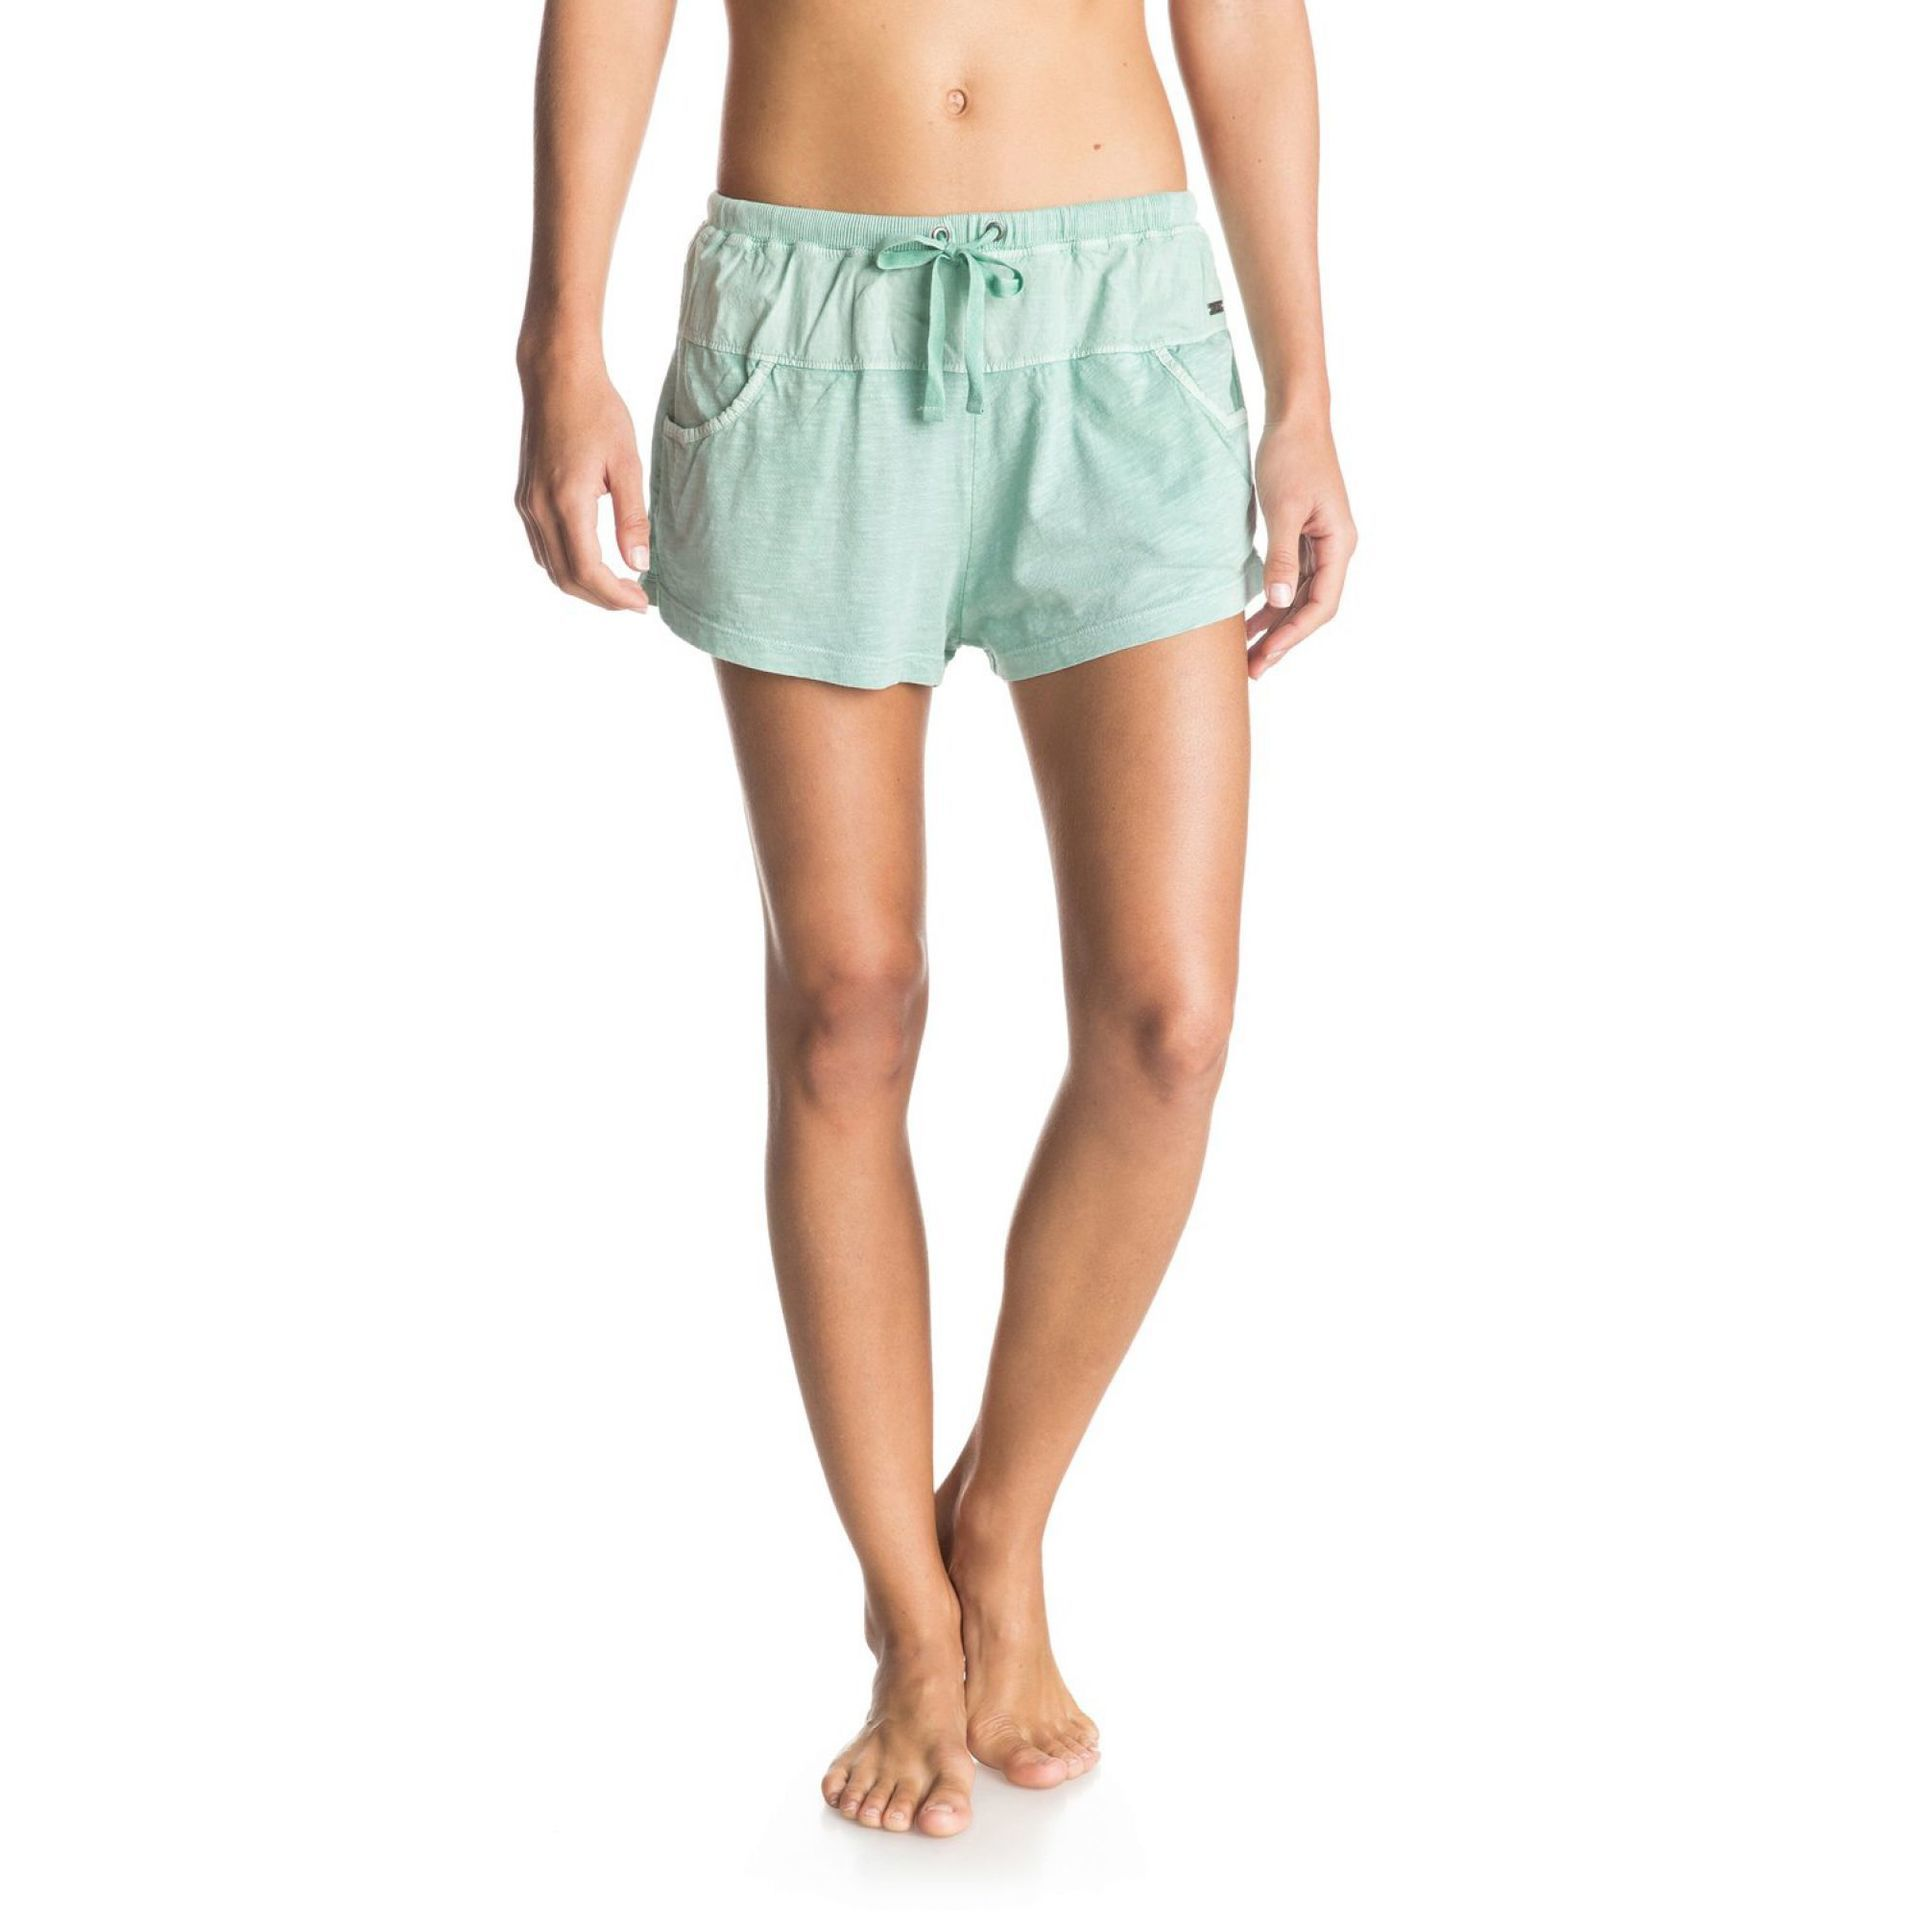 SZORTY ROXY STARS ON THE WATER SHORTS BFR0 1